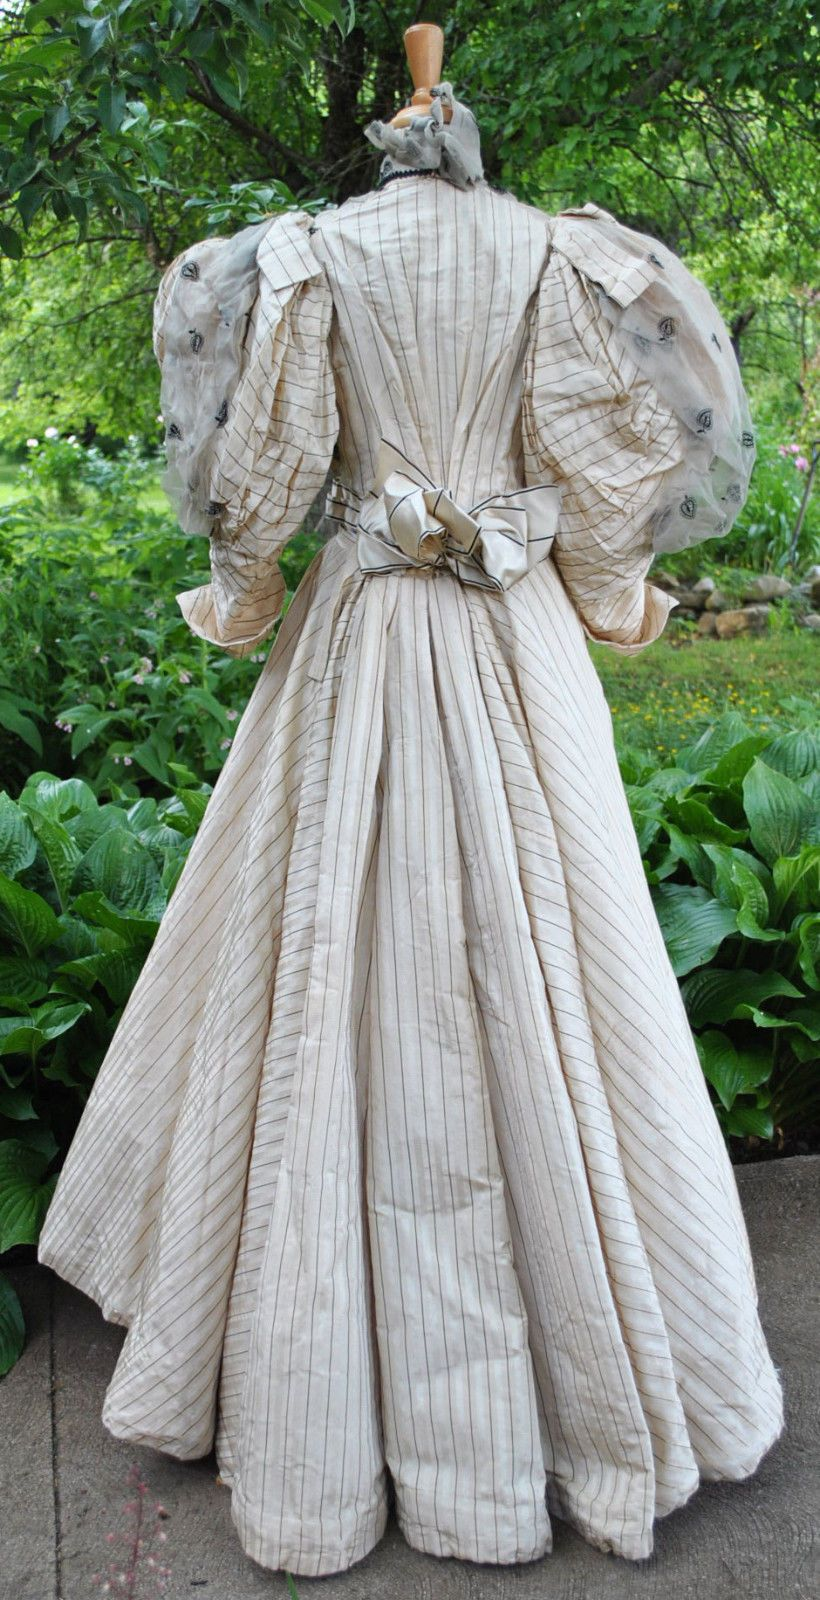 Antique Dress 1893 2 Pc Walking Suit Satin Puffed Sleeves Museum De Accessioned Ebay History Women Fashion Vintage Dresses 1890s Day Dress [ 1600 x 820 Pixel ]